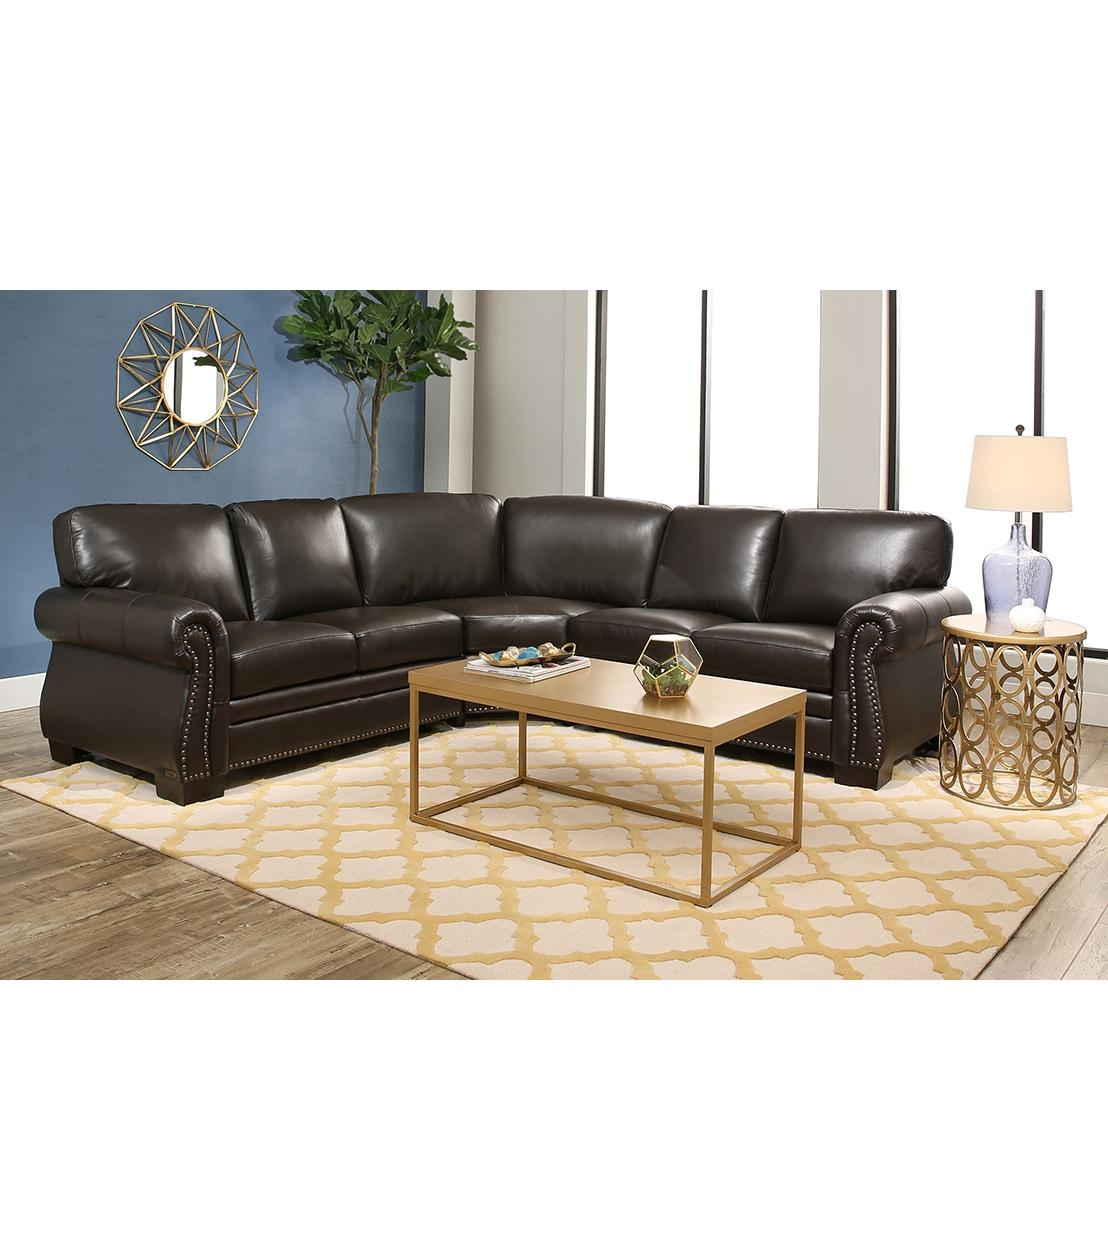 Sectionals With Regard To Abbyson Living Sectional Sofas (Image 18 of 20)